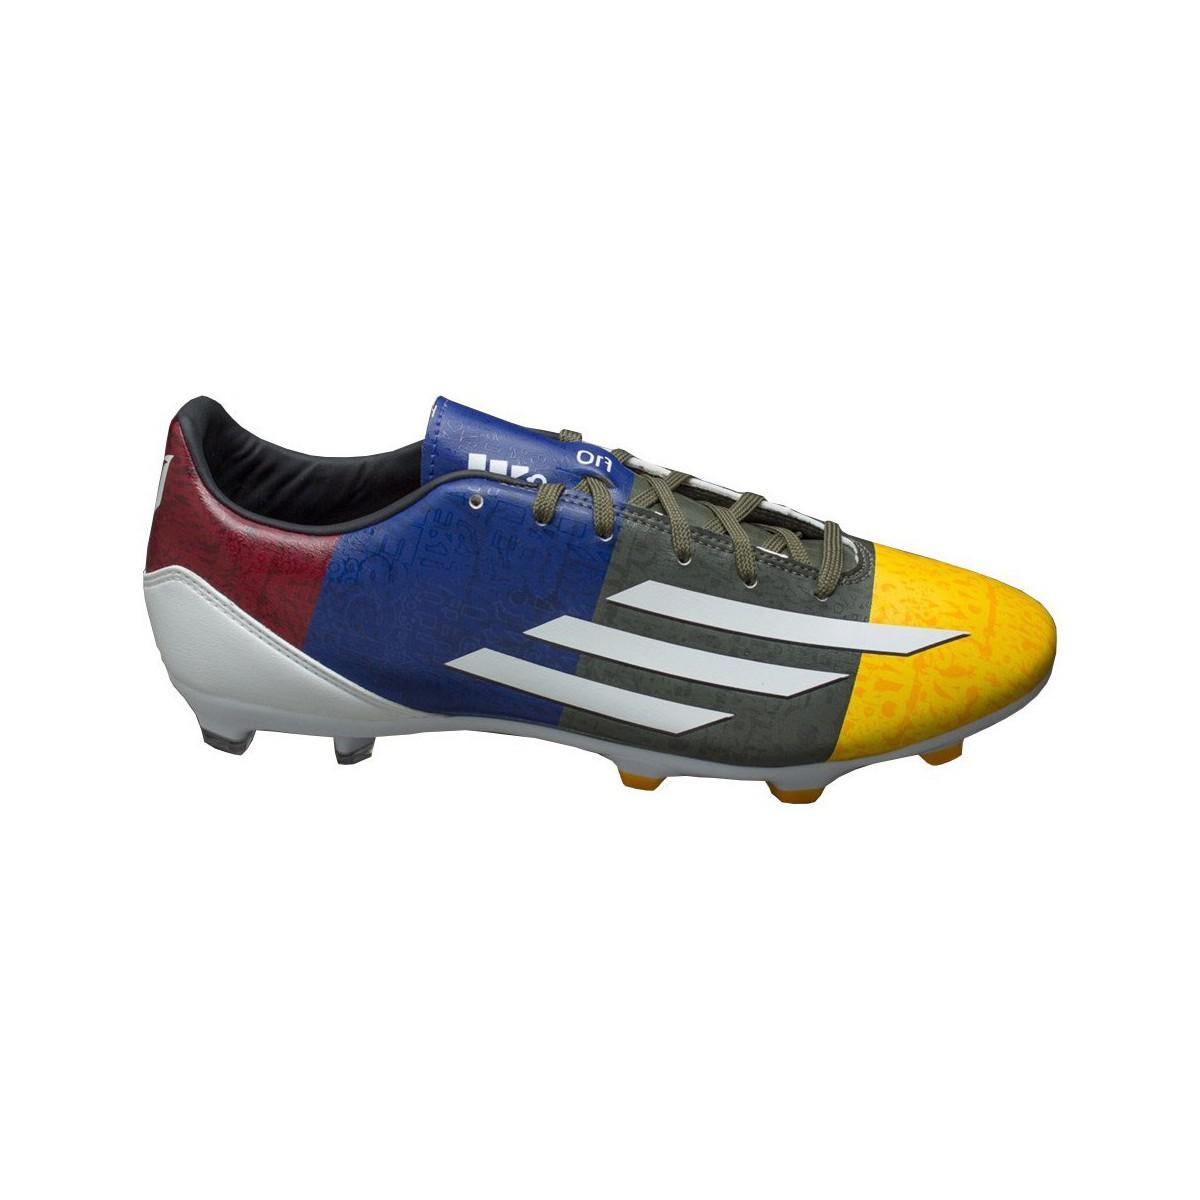 Adidas F10 Fg Messi Men s Football Boots In Multicolour in Blue for ... b2e593a817b